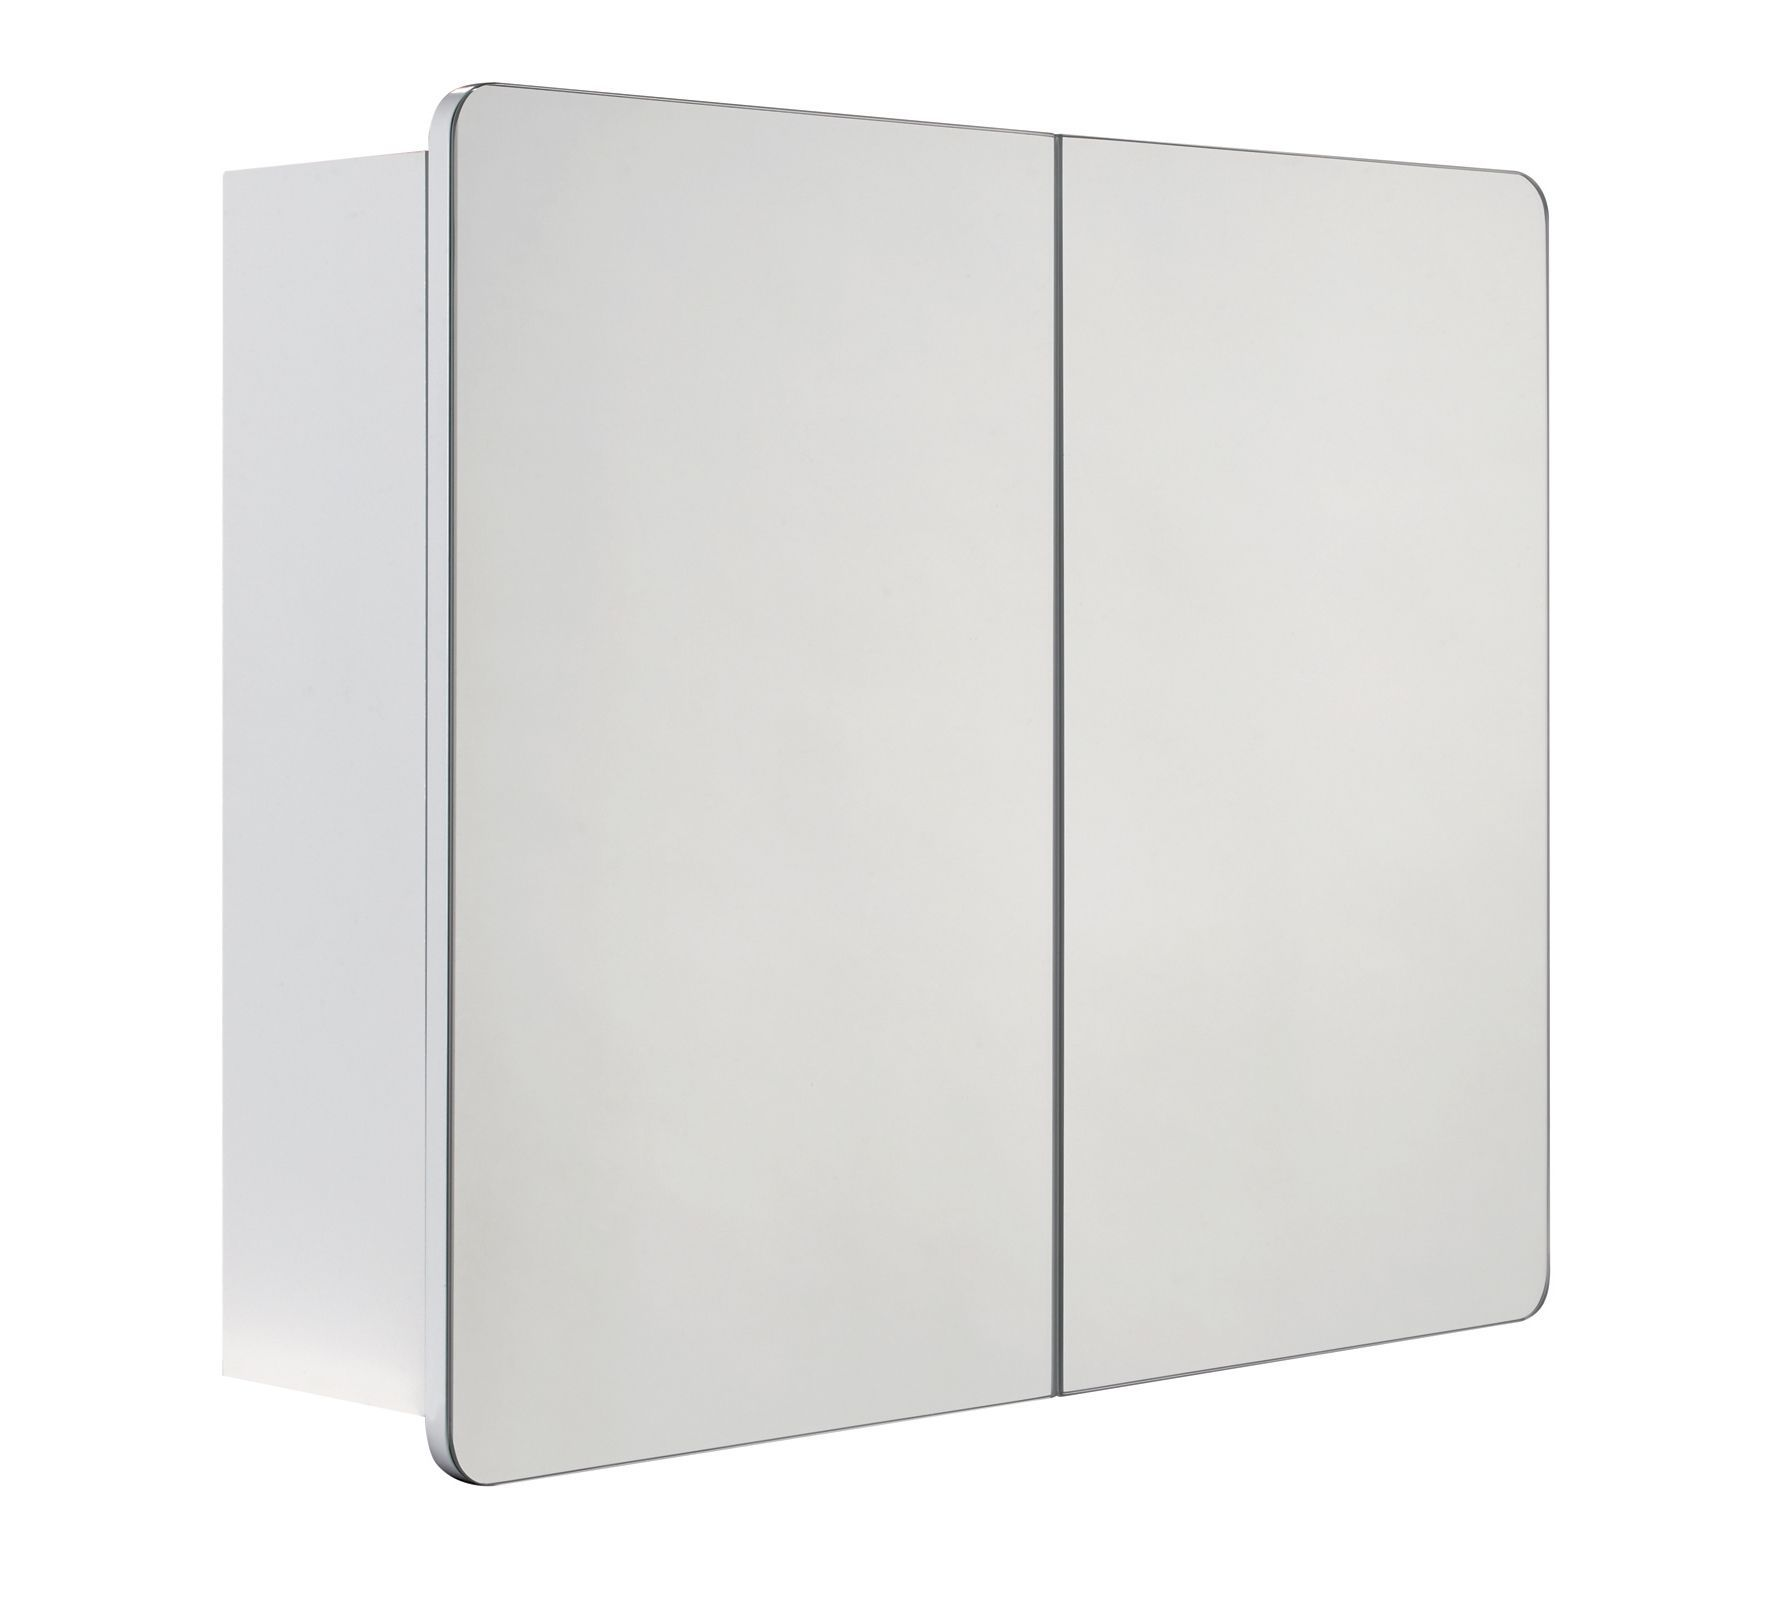 Cooke & Lewis Lesina Double Door White Mirror Cabinet